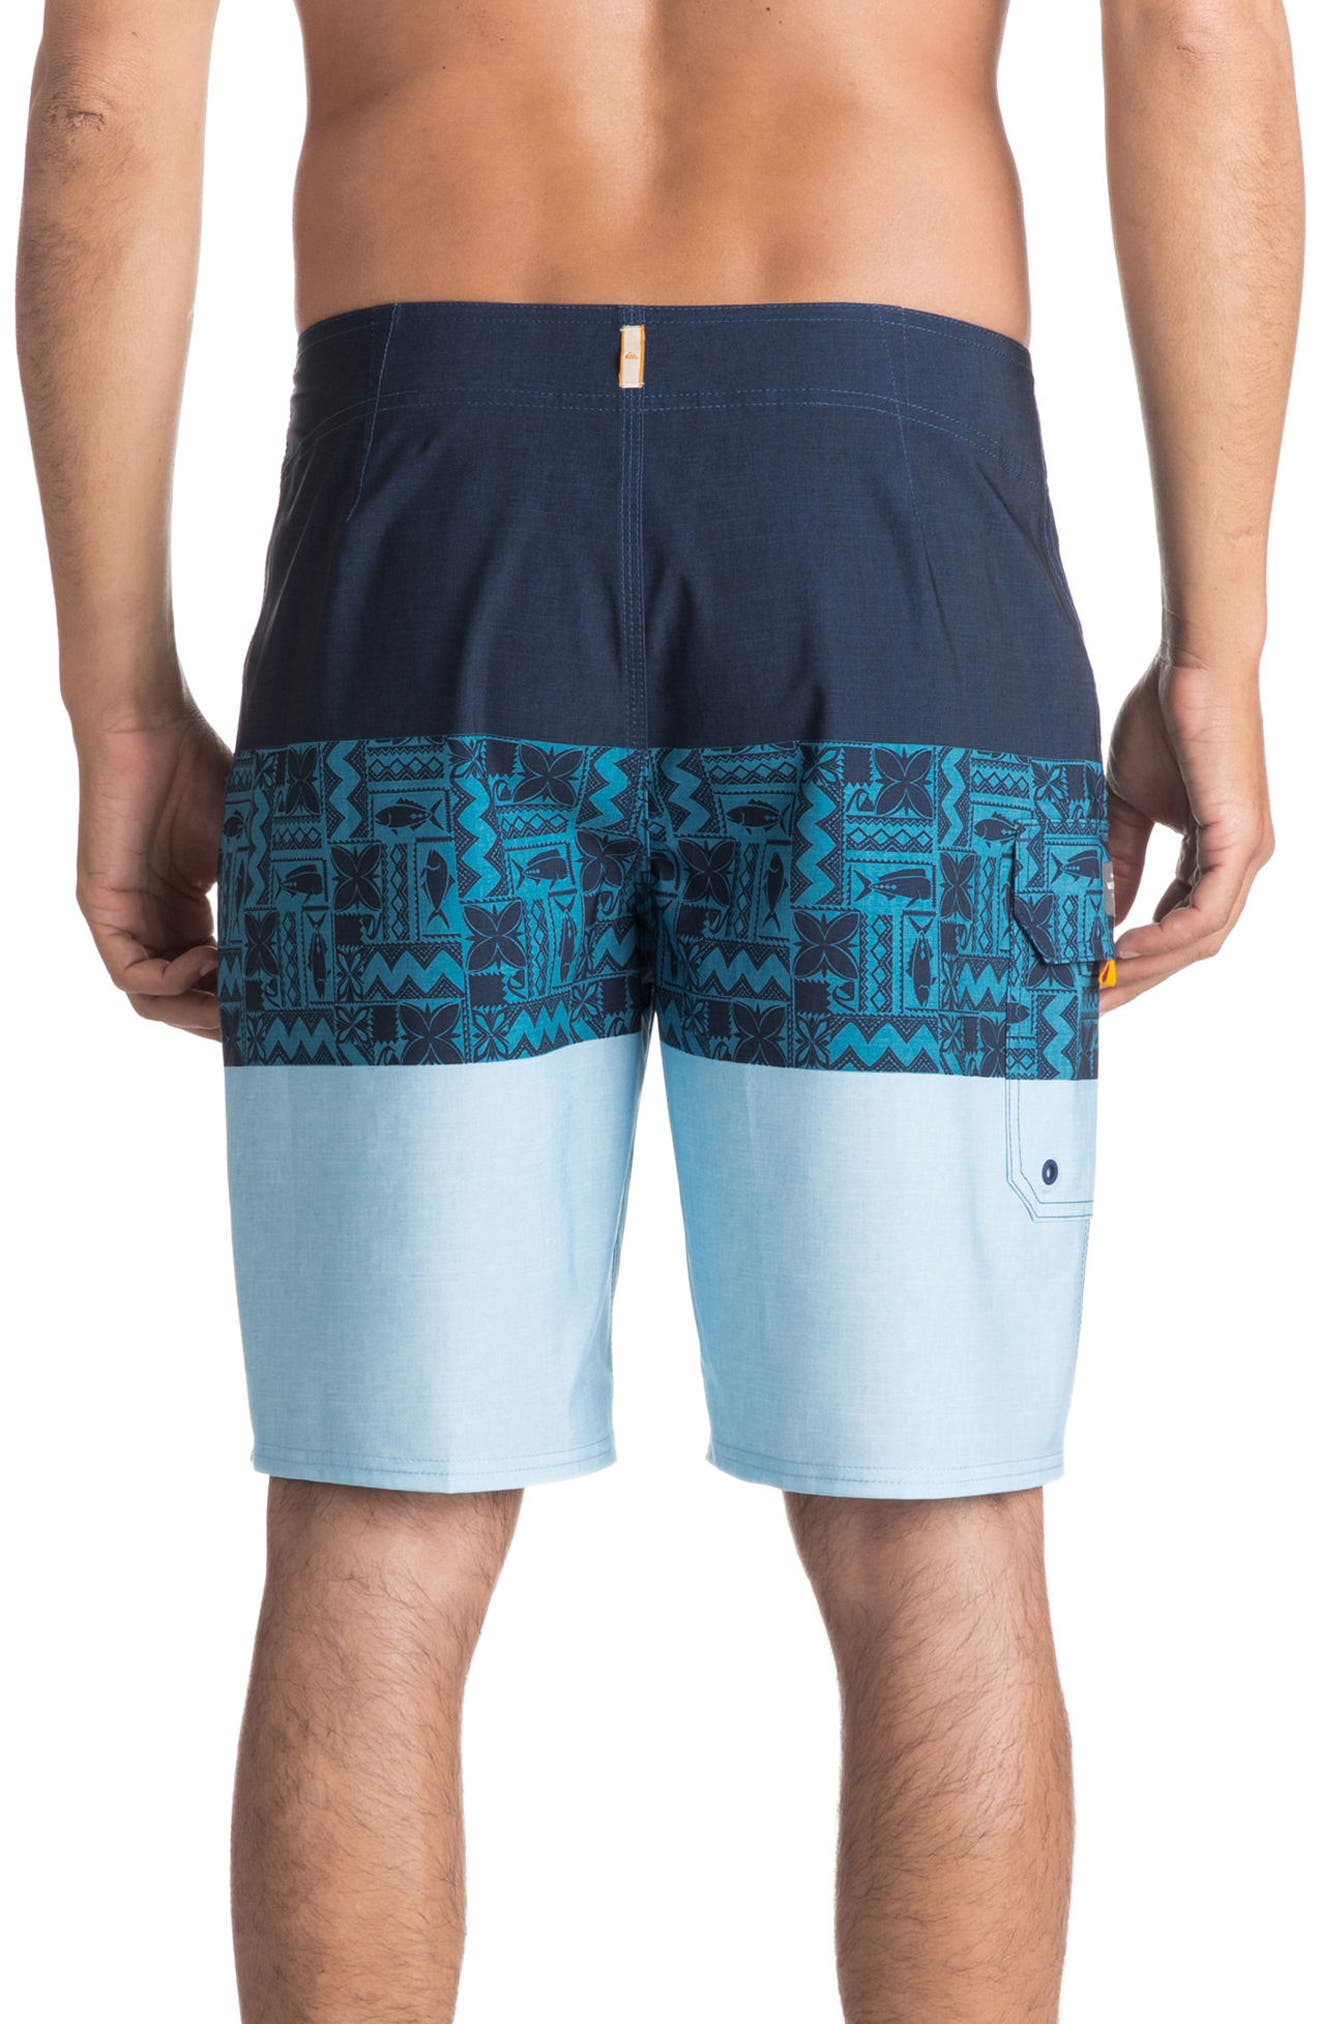 Fairway Triblock Board Shorts,                             Alternate thumbnail 2, color,                             401